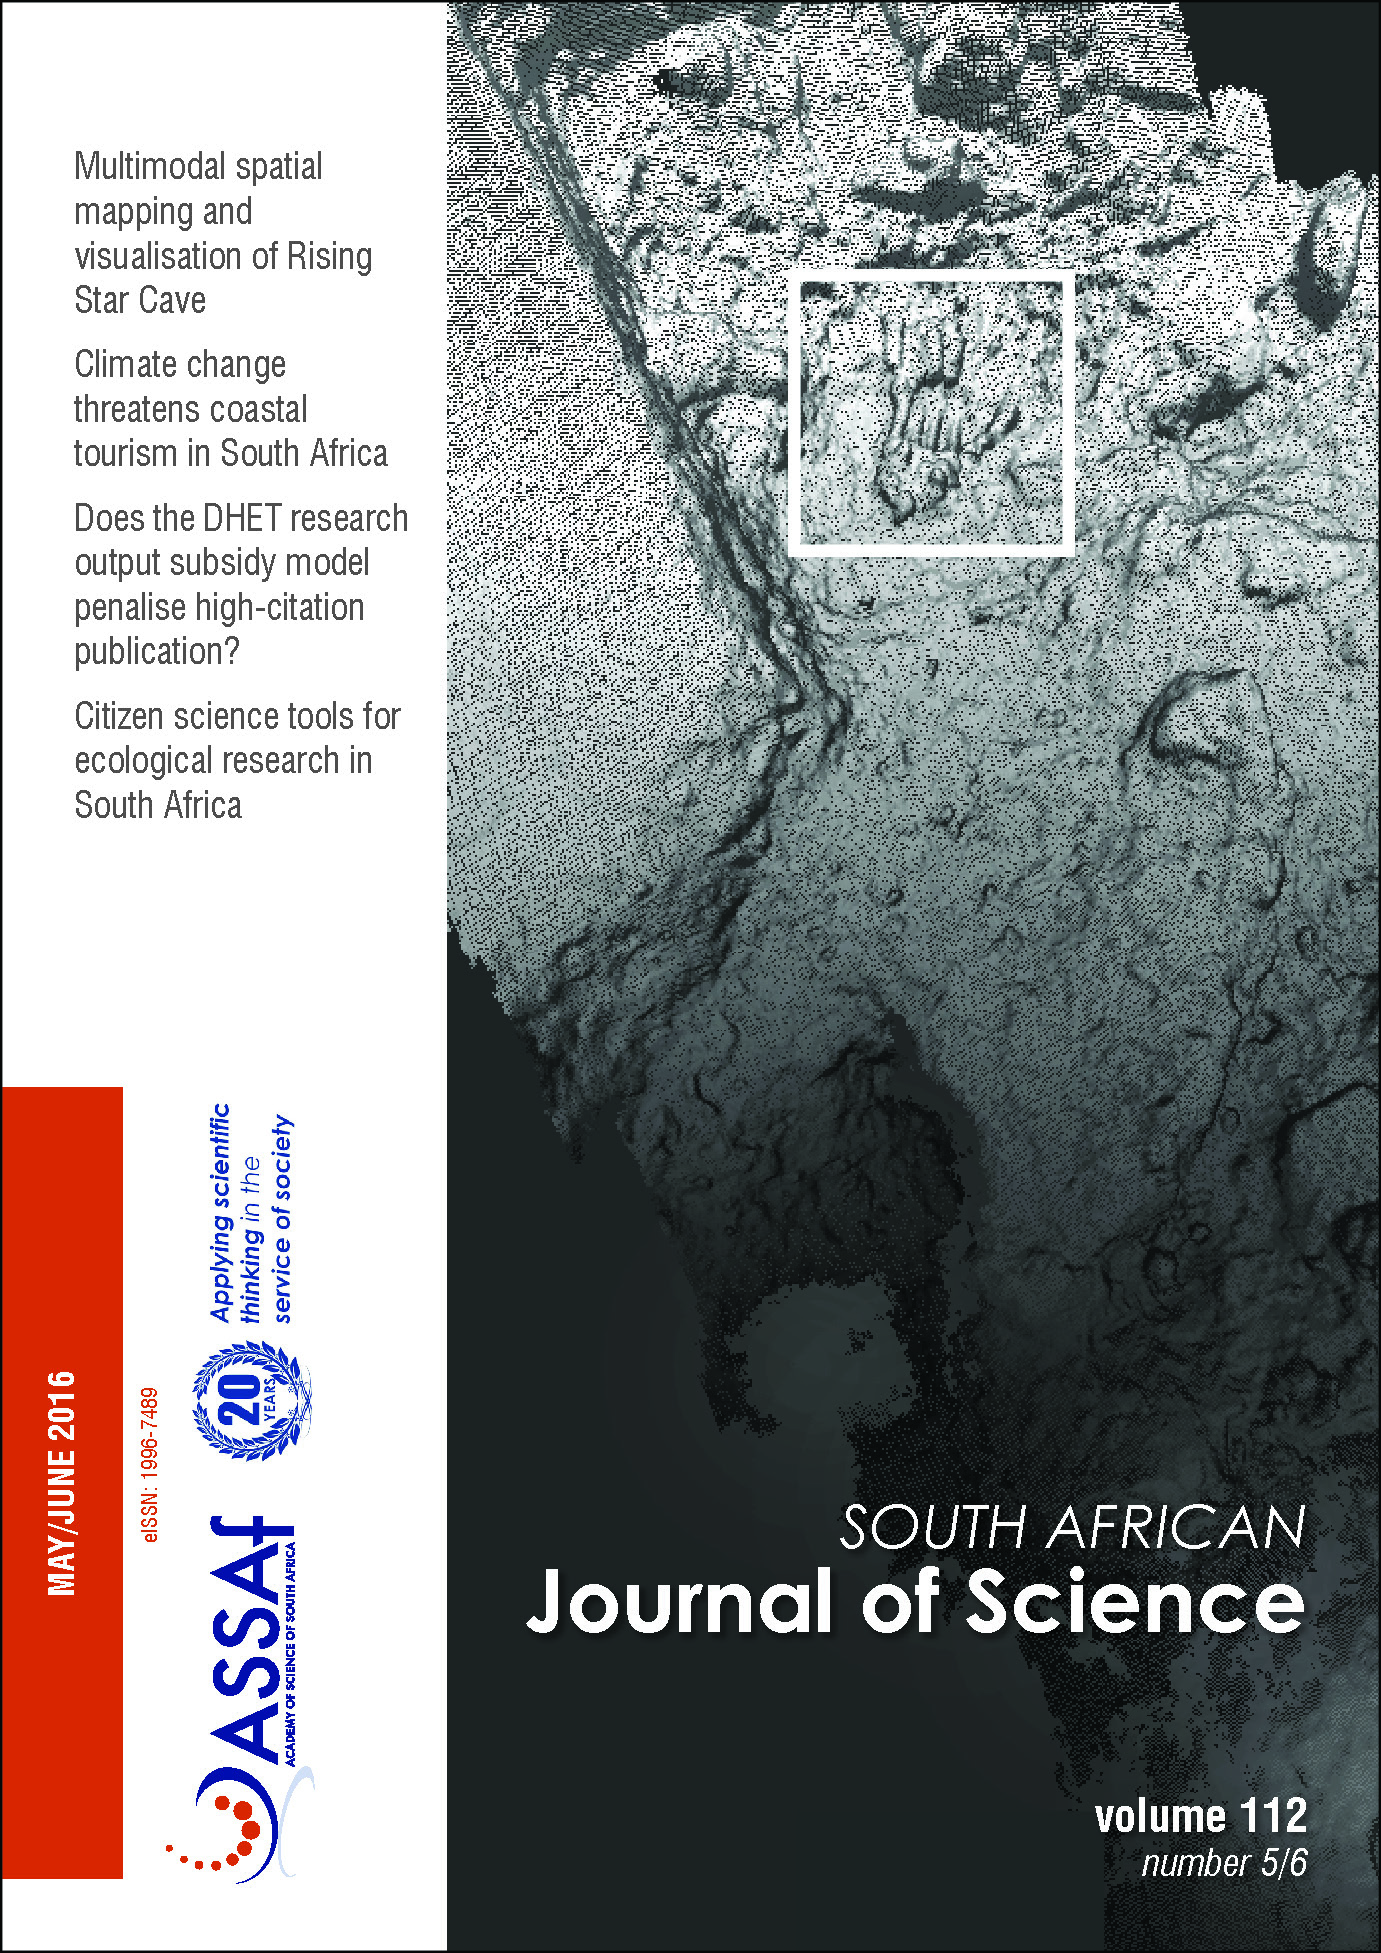 View Vol. 112 No. 5/6 (2016): South African Journal of Science